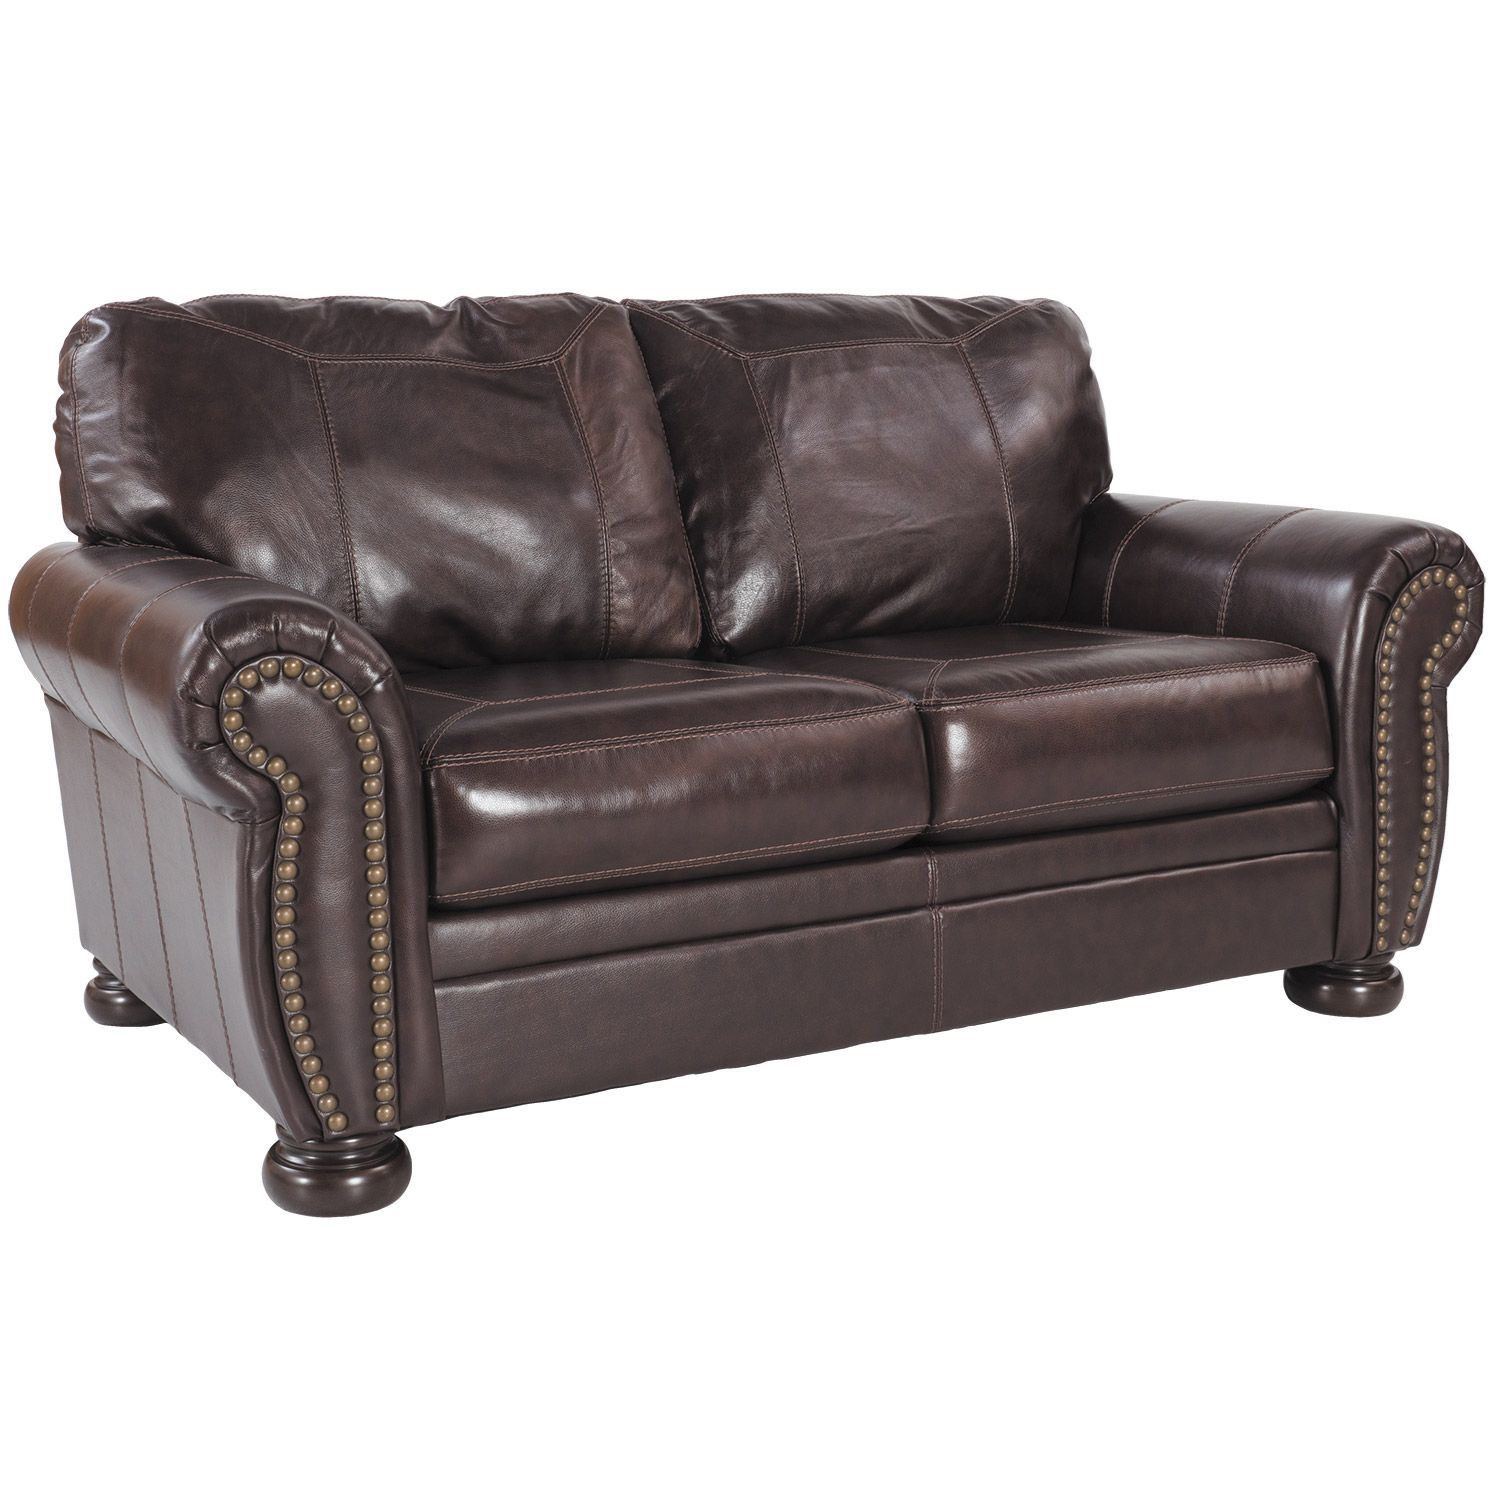 Banner Leather Loveseat